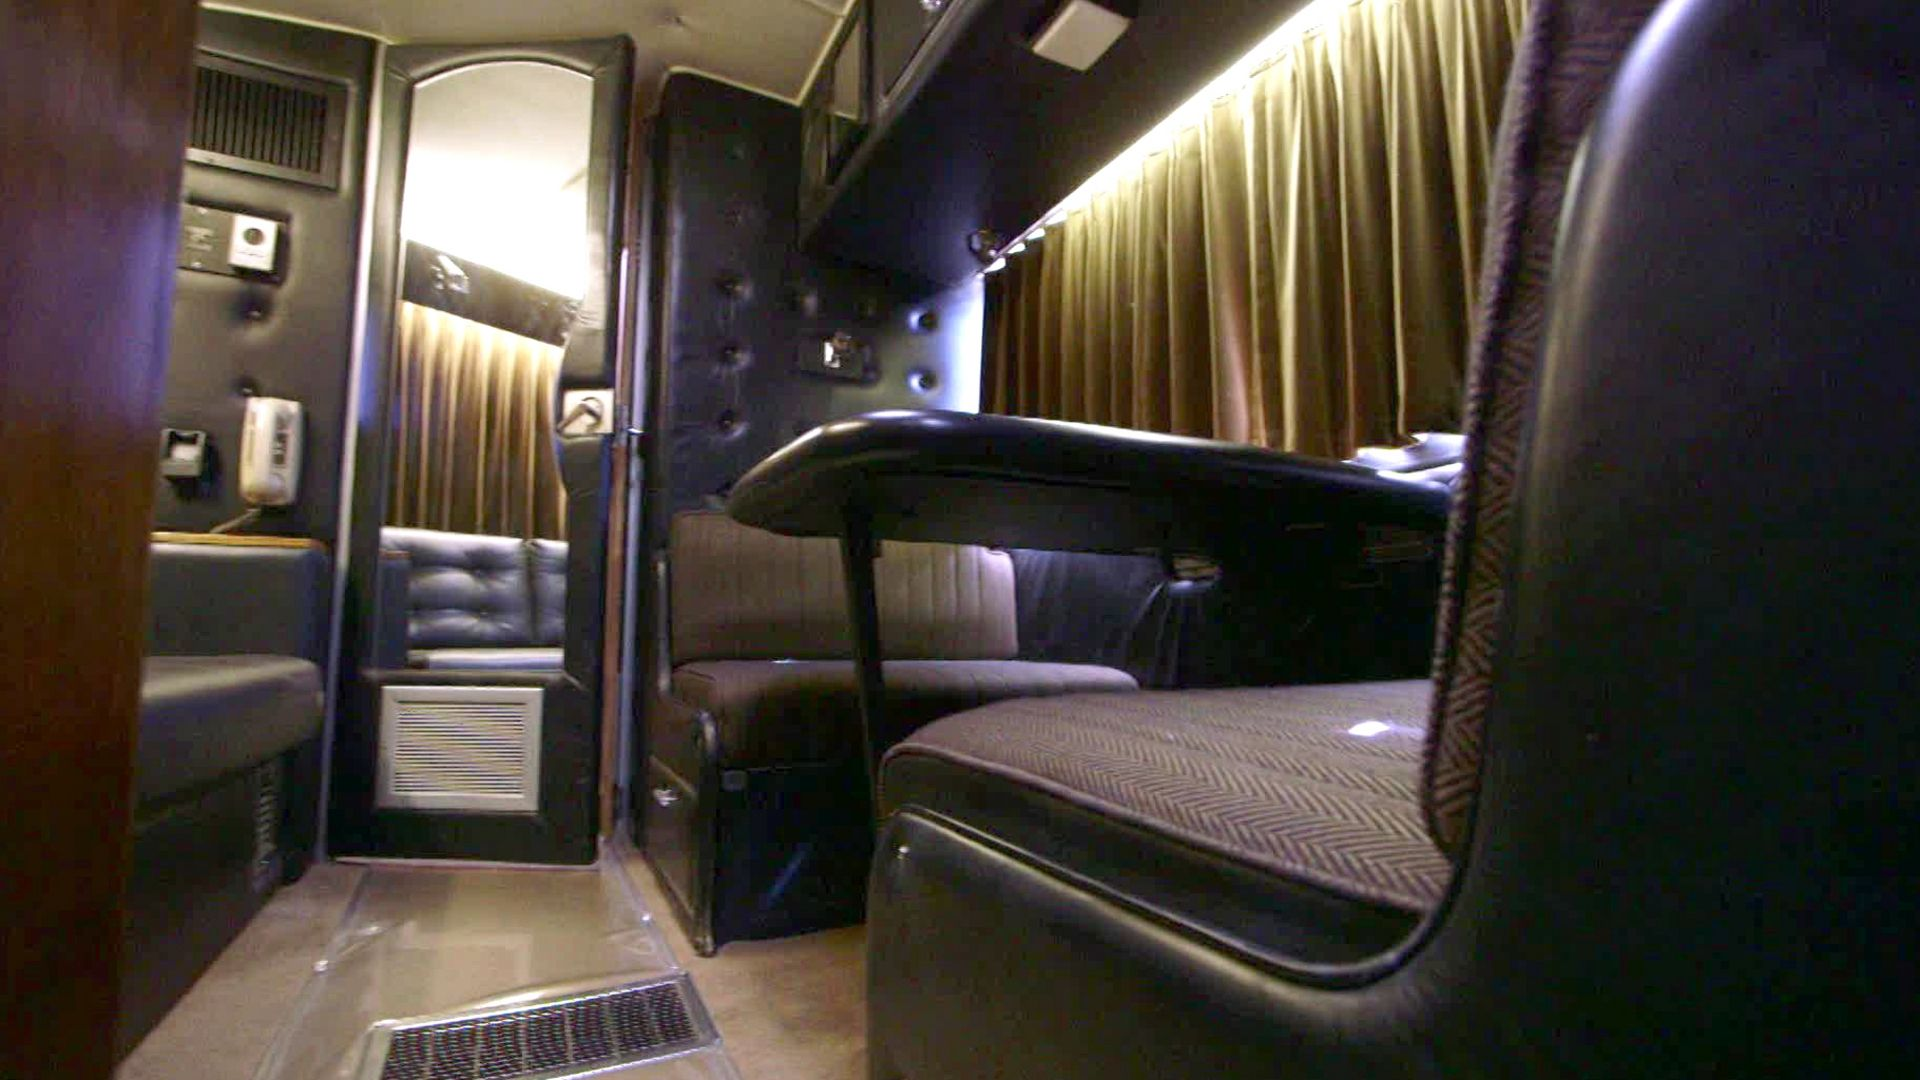 Justin Bieber Tour Bus Inside | Top Pictures Gallery Online